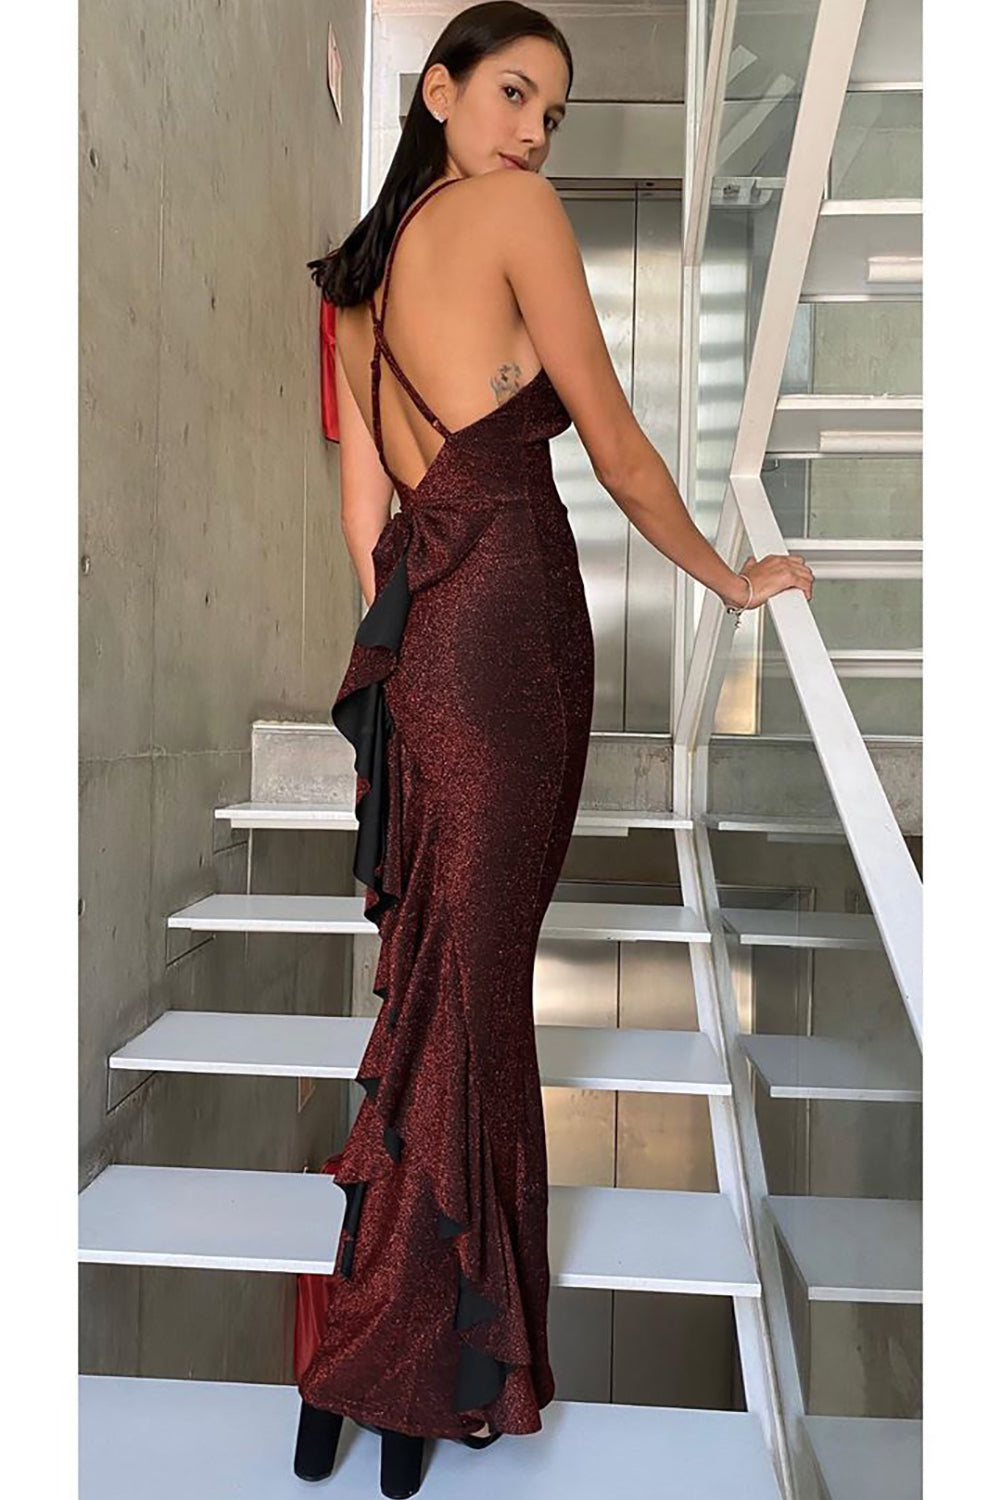 Red This Is Love Glitter Gown Evening Dresses Discount Designer Fashion Clothes Shoes Bags Women Men Kids Children Black Owned Business